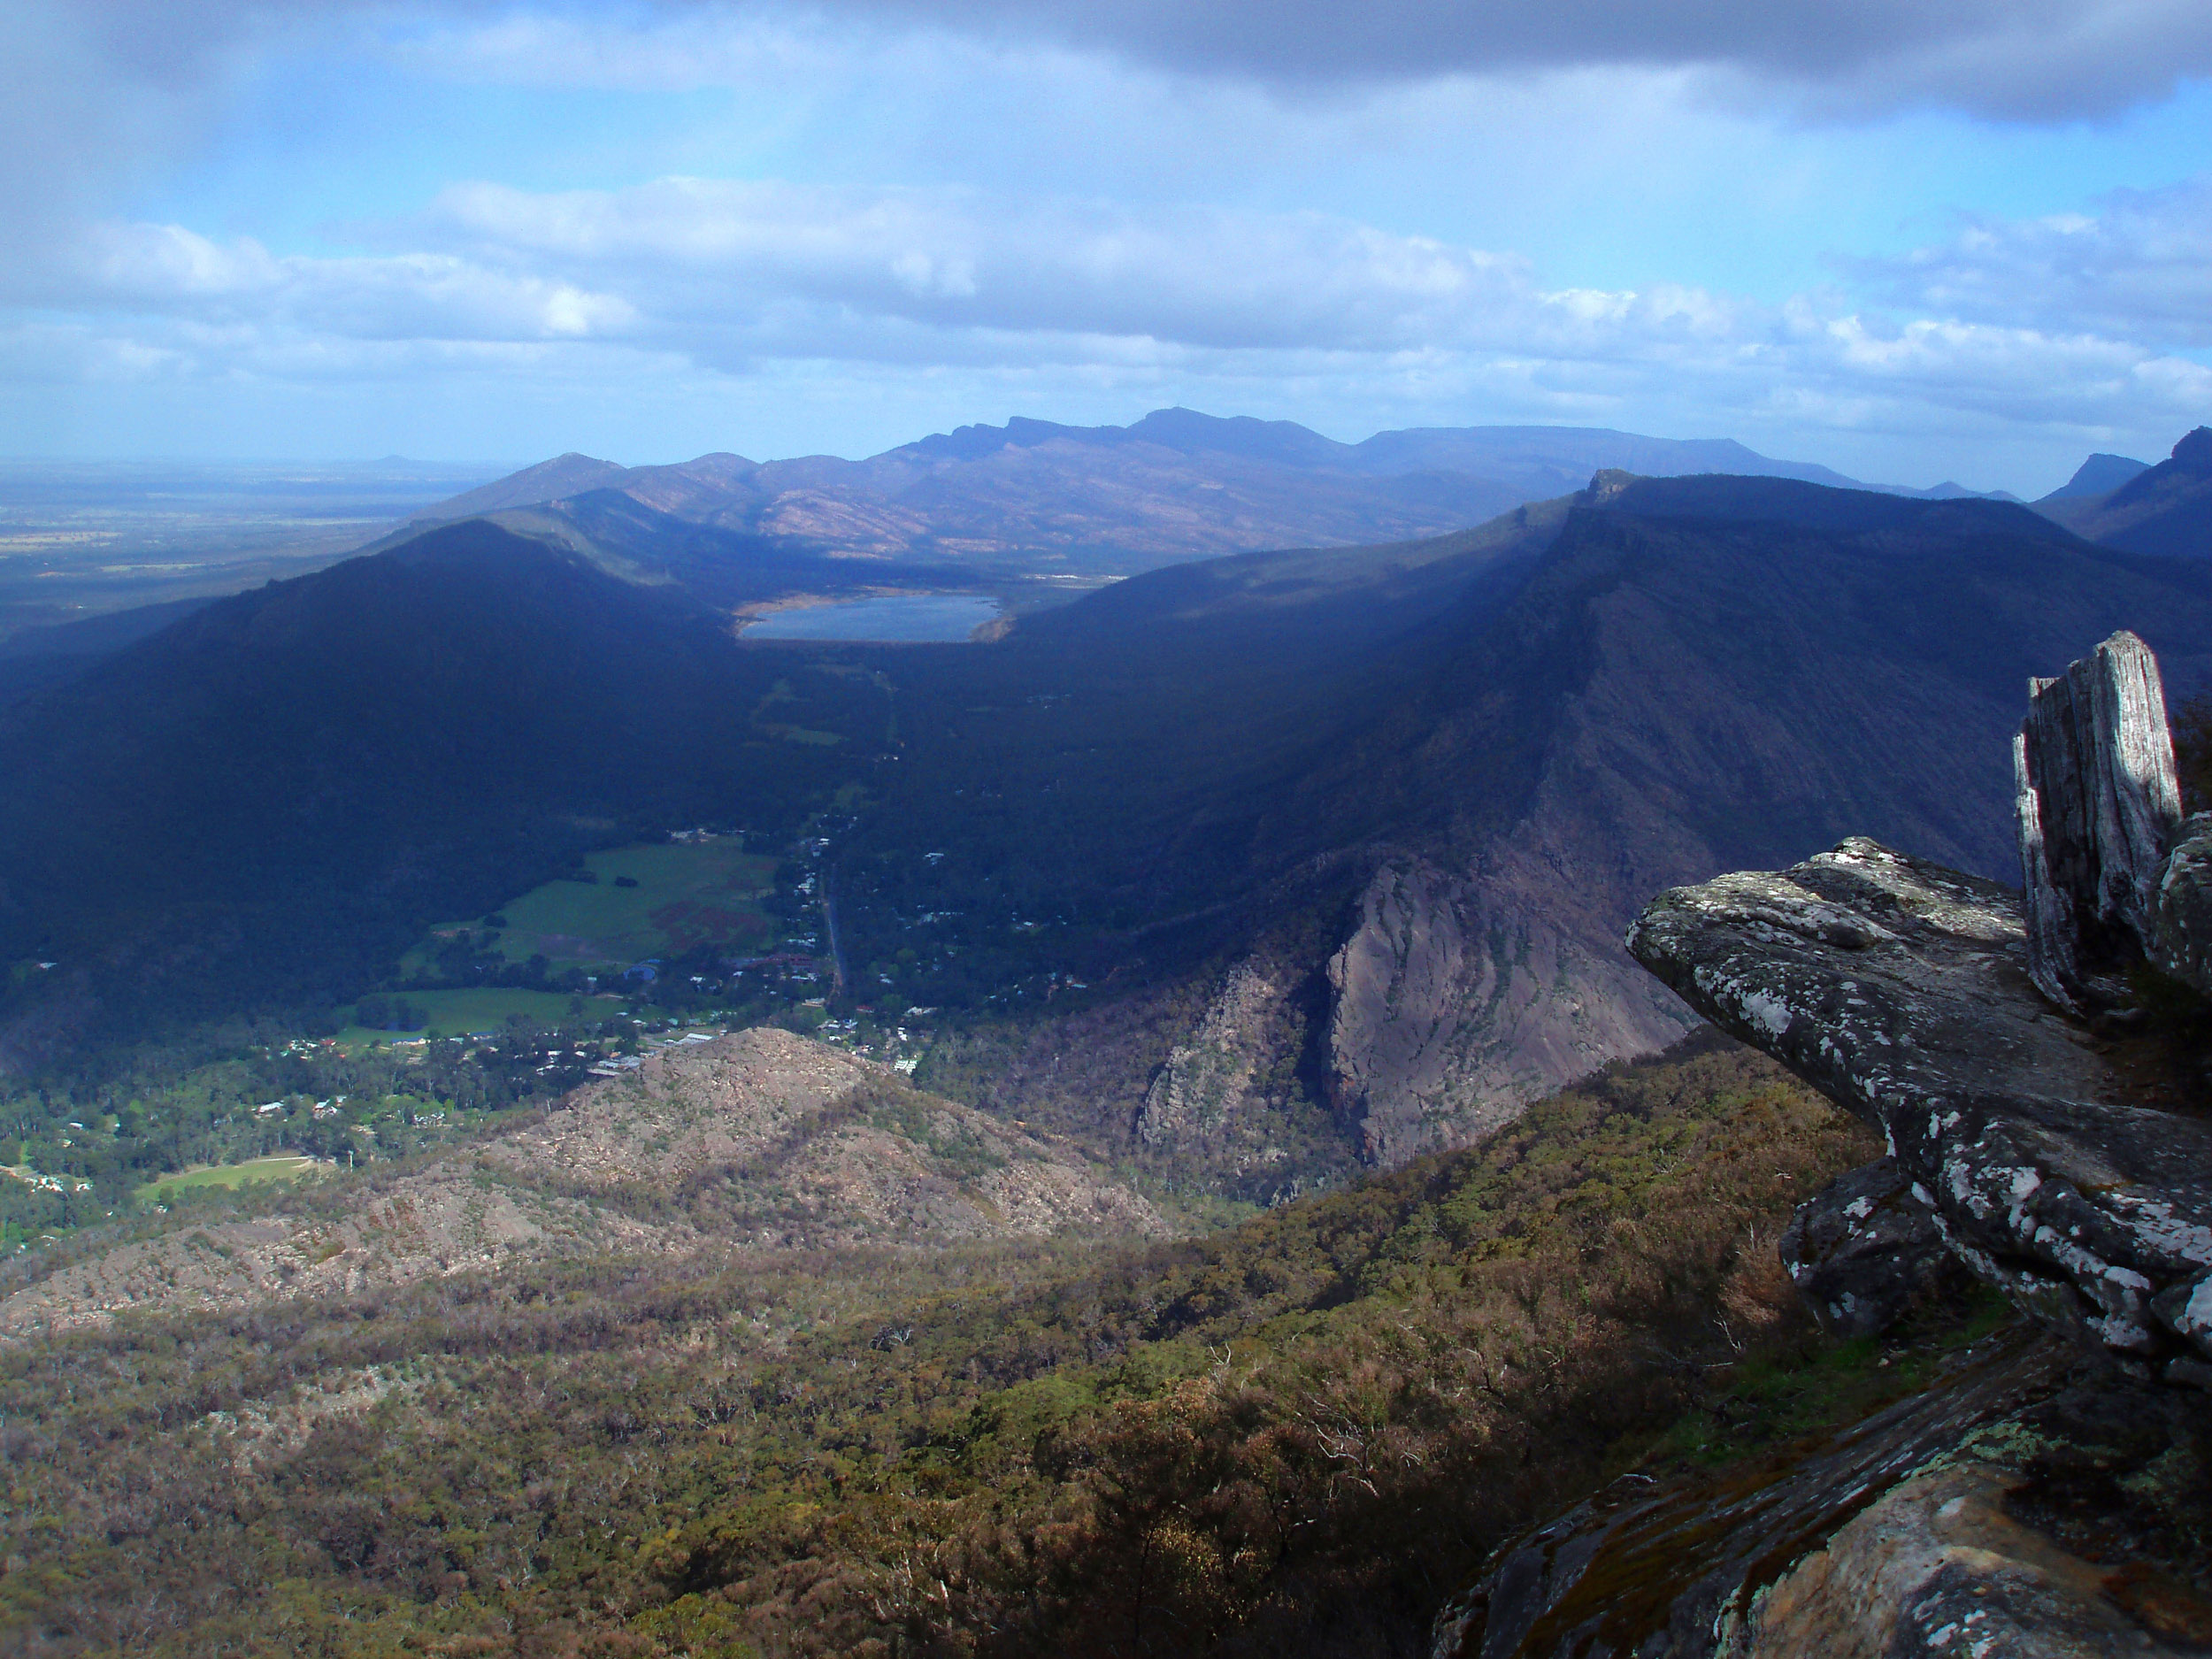 spectacular landscape view in the grampians mountains national park, queensland